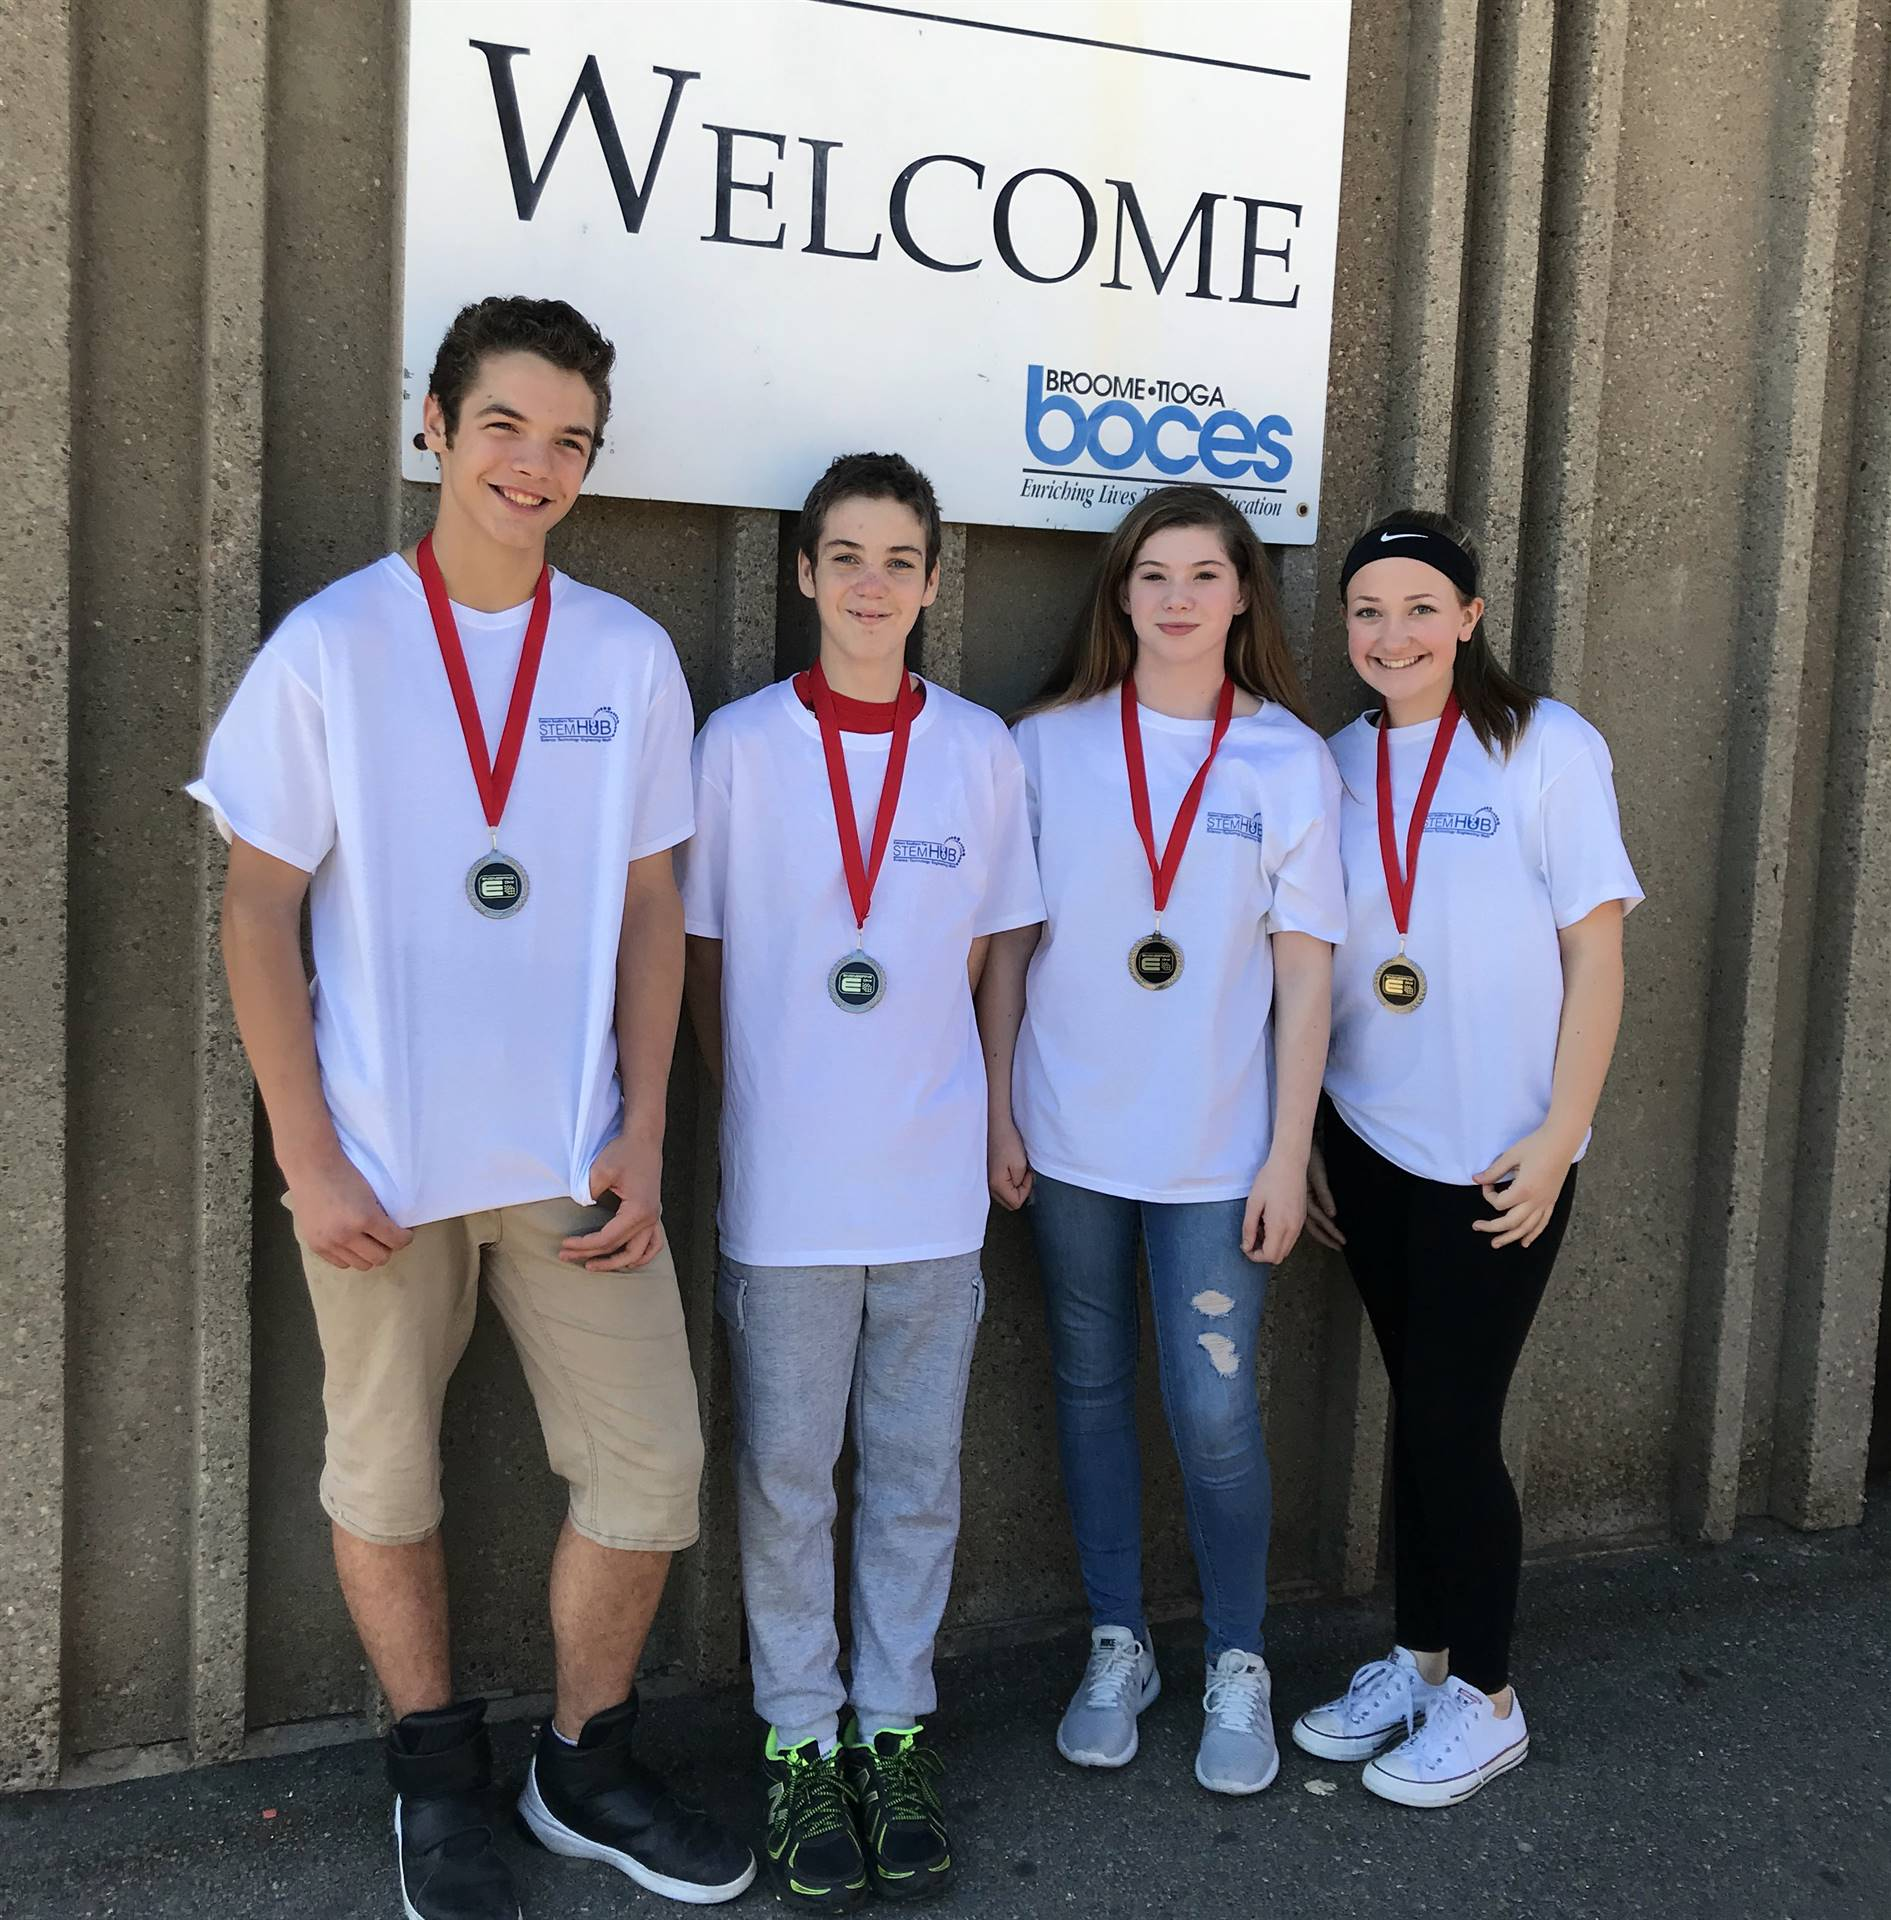 P-TECH 9 team takes second place at Engineering Day